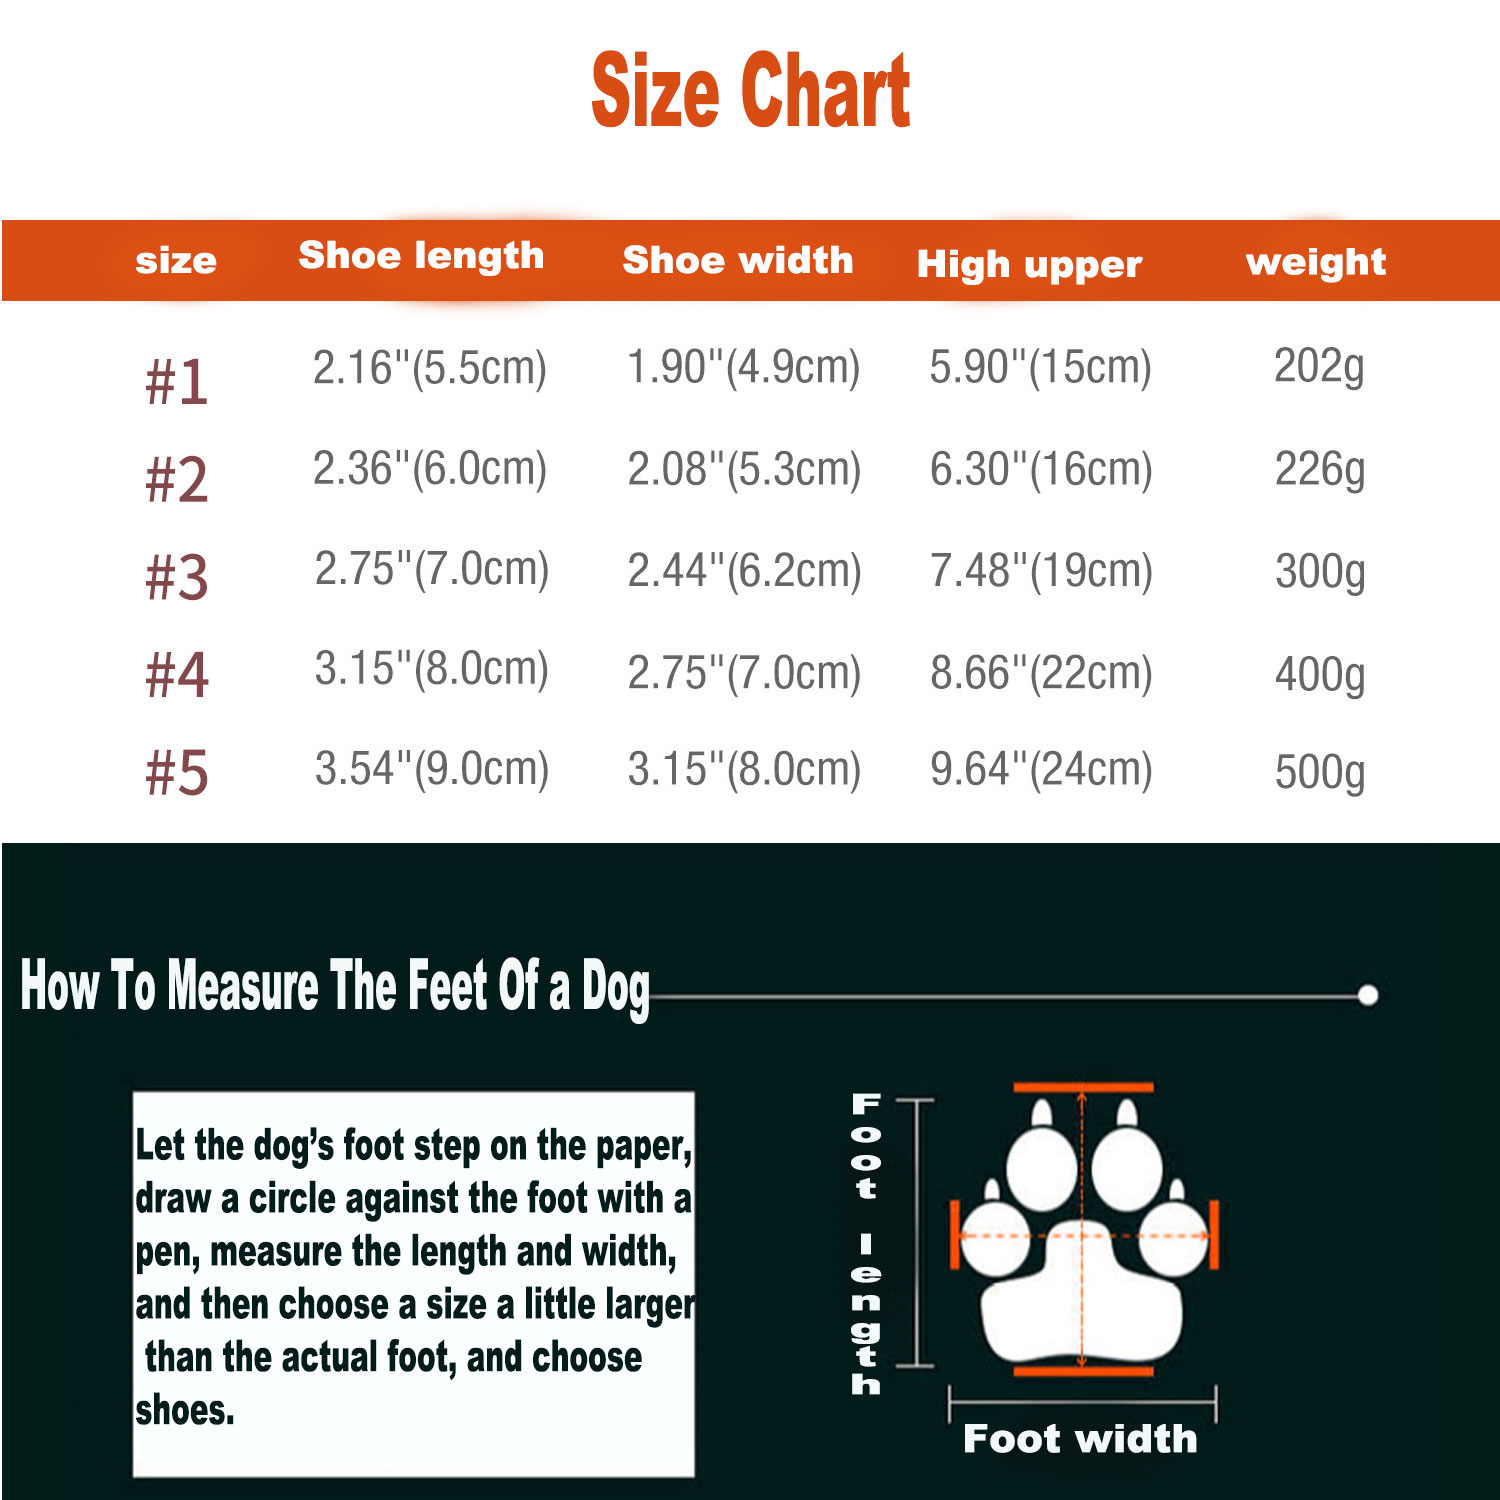 DogMEGA Dog Waterproof Boots | Nonslip Warm Lining Rubber Sole Boots for Winter